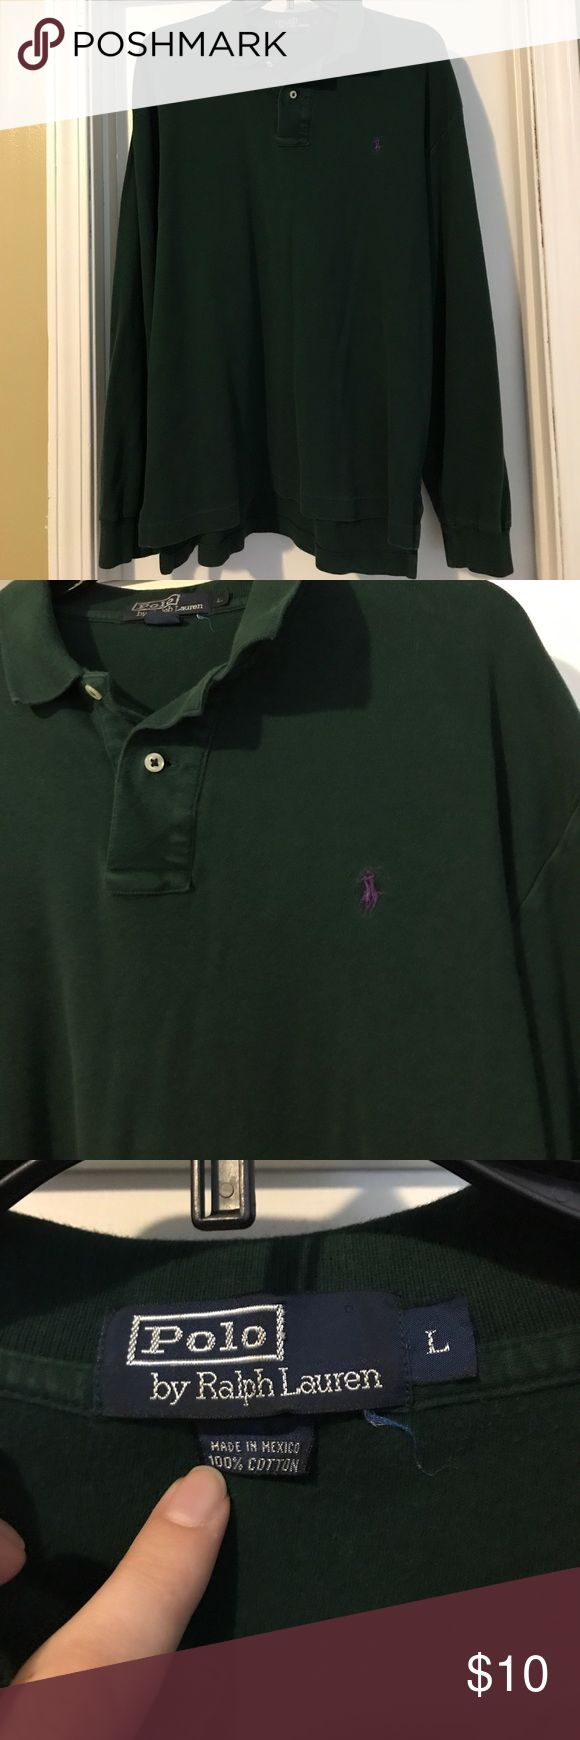 Polo by Ralph Lauren men's long sleeve shirt sz L Polo by Ralph Lauren Men's size Large hunter green 100% cotton Long sleeve polo shirt with purple polo emblem. GUC, asking $10. Smoke free home. Polo by Ralph Lauren Shirts Polos